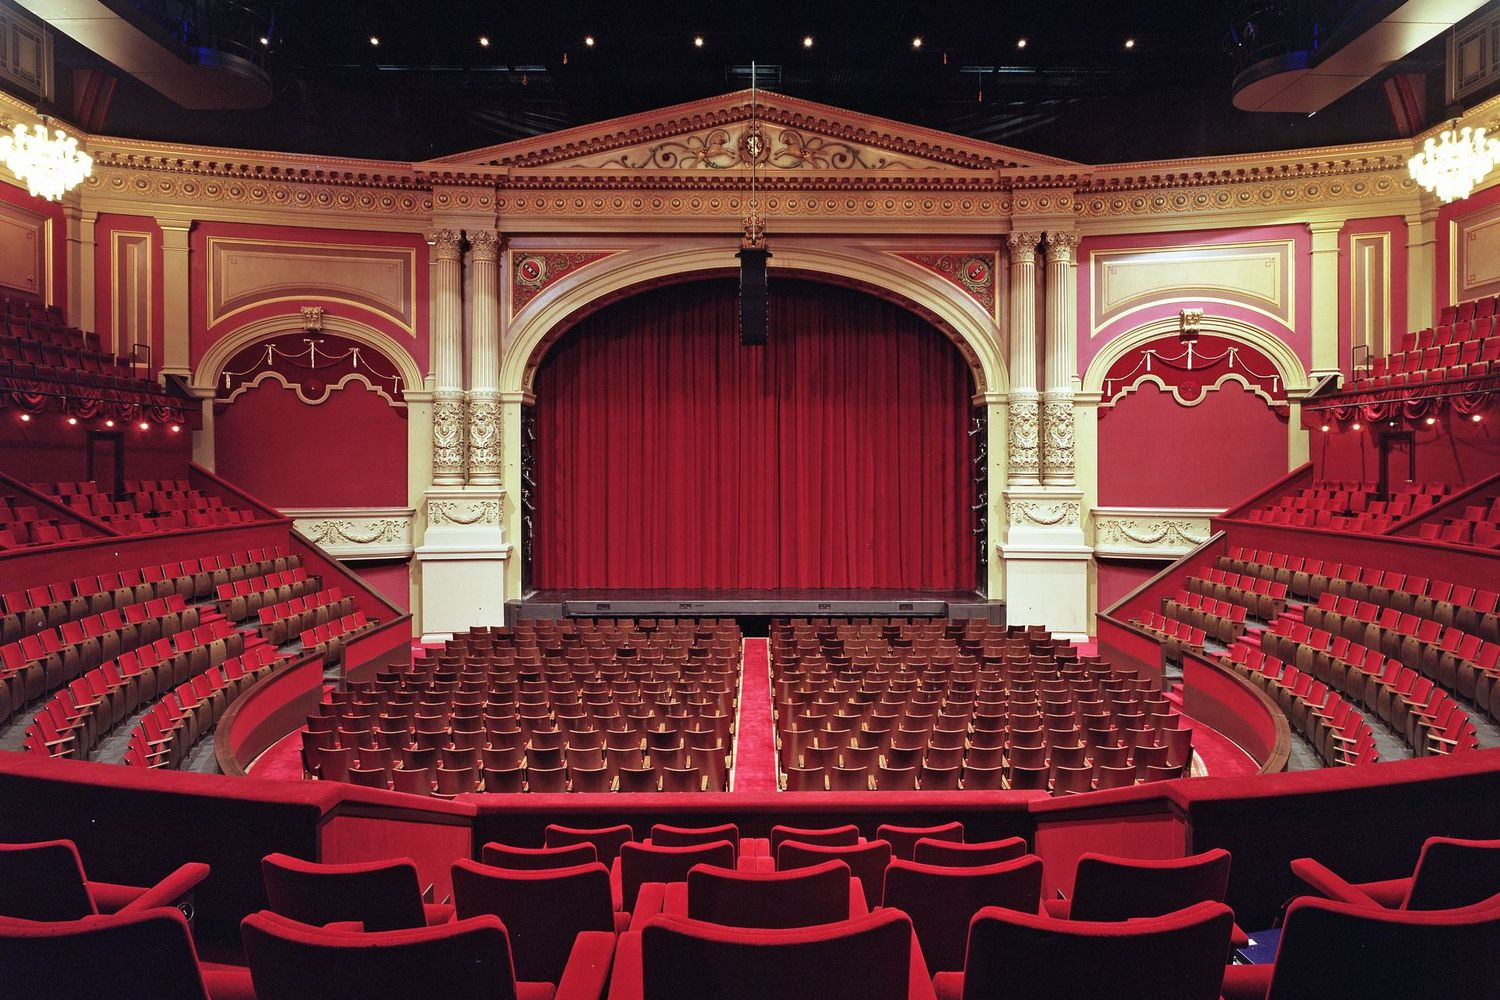 Know the Benefits of Buying Theater Tickets Online